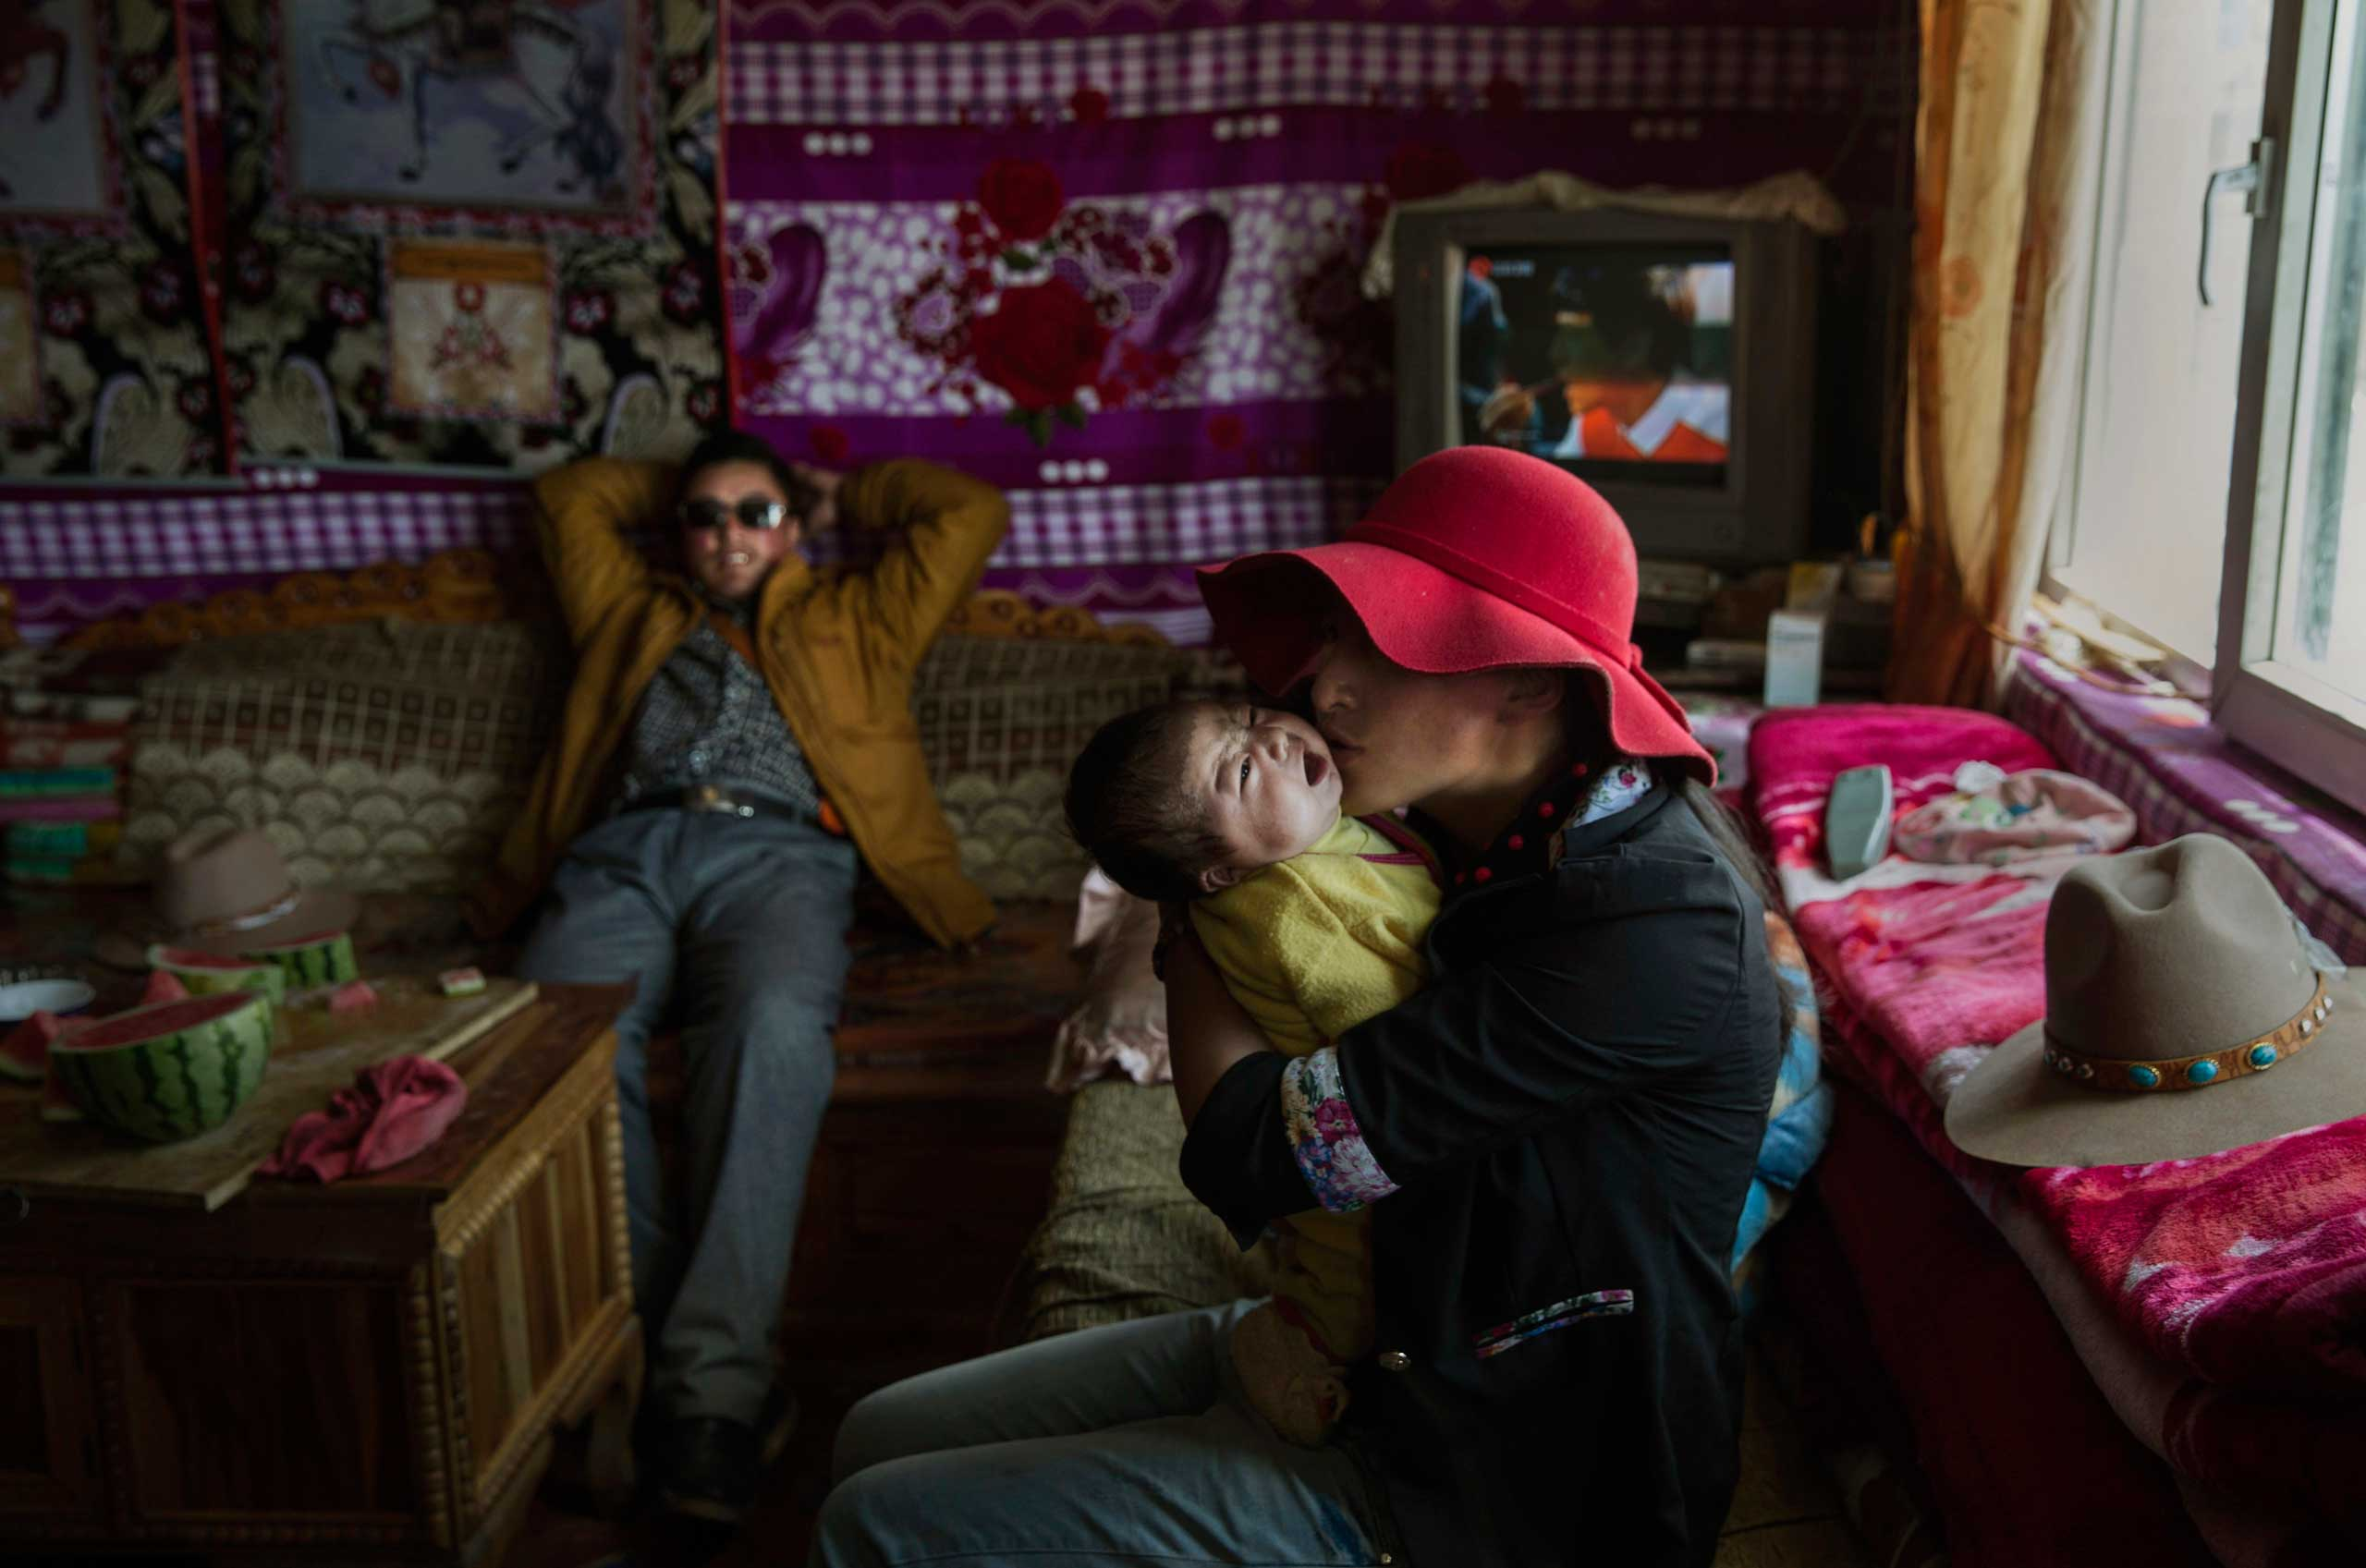 Former Tibetan nomad Kyipotsomo kisses her son Kunchok, 3 months, as father Jamyang Palden looks on as they sit in the living room of their house in a government resettlement community  on the Tibetan Plateau in Madou County, on July 23, 2015.